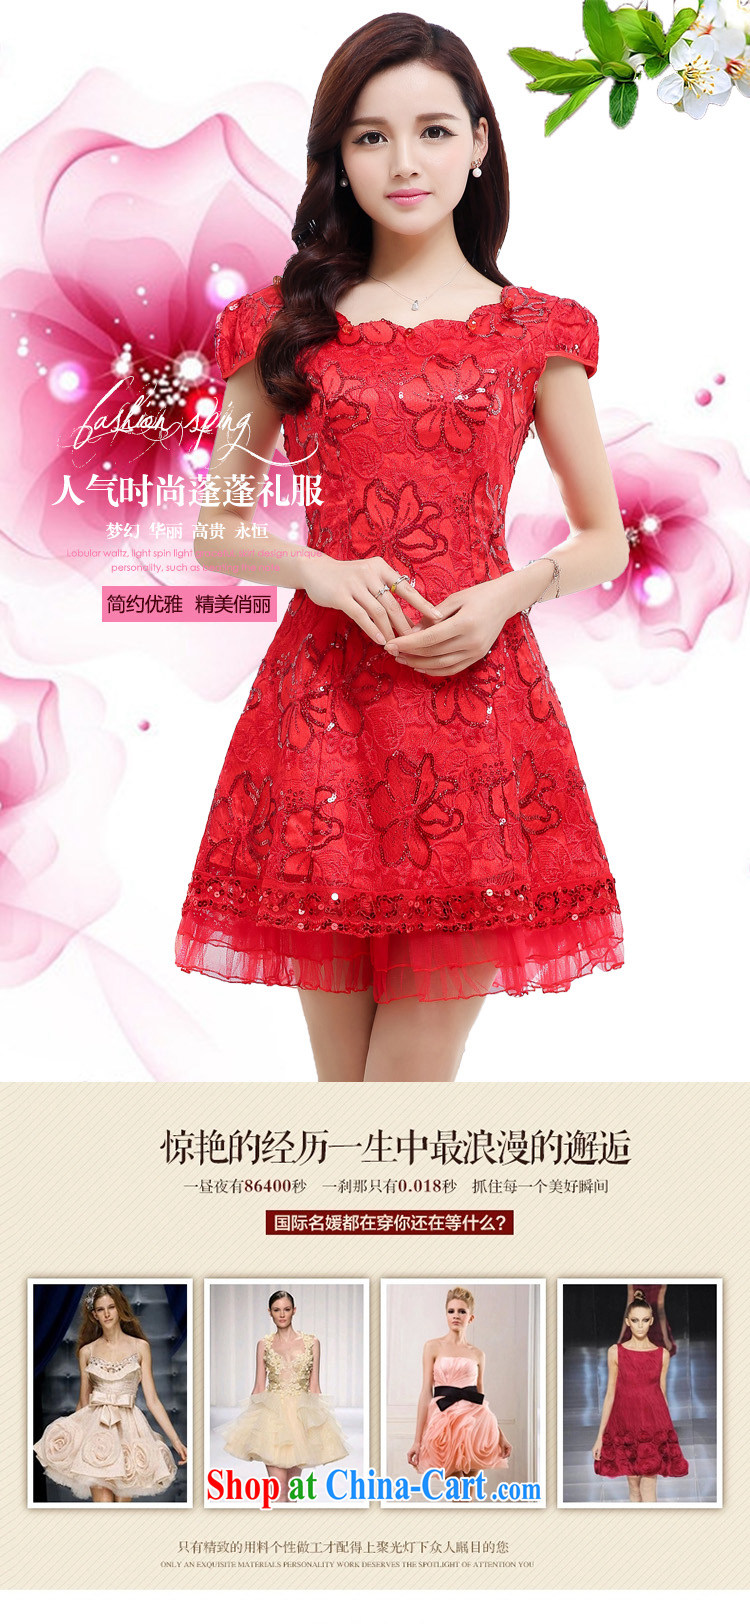 The dress access - Access To And The Sau 2015 Spring And Summer New Bride Wedding Dress Toast Clothing Cheongsam